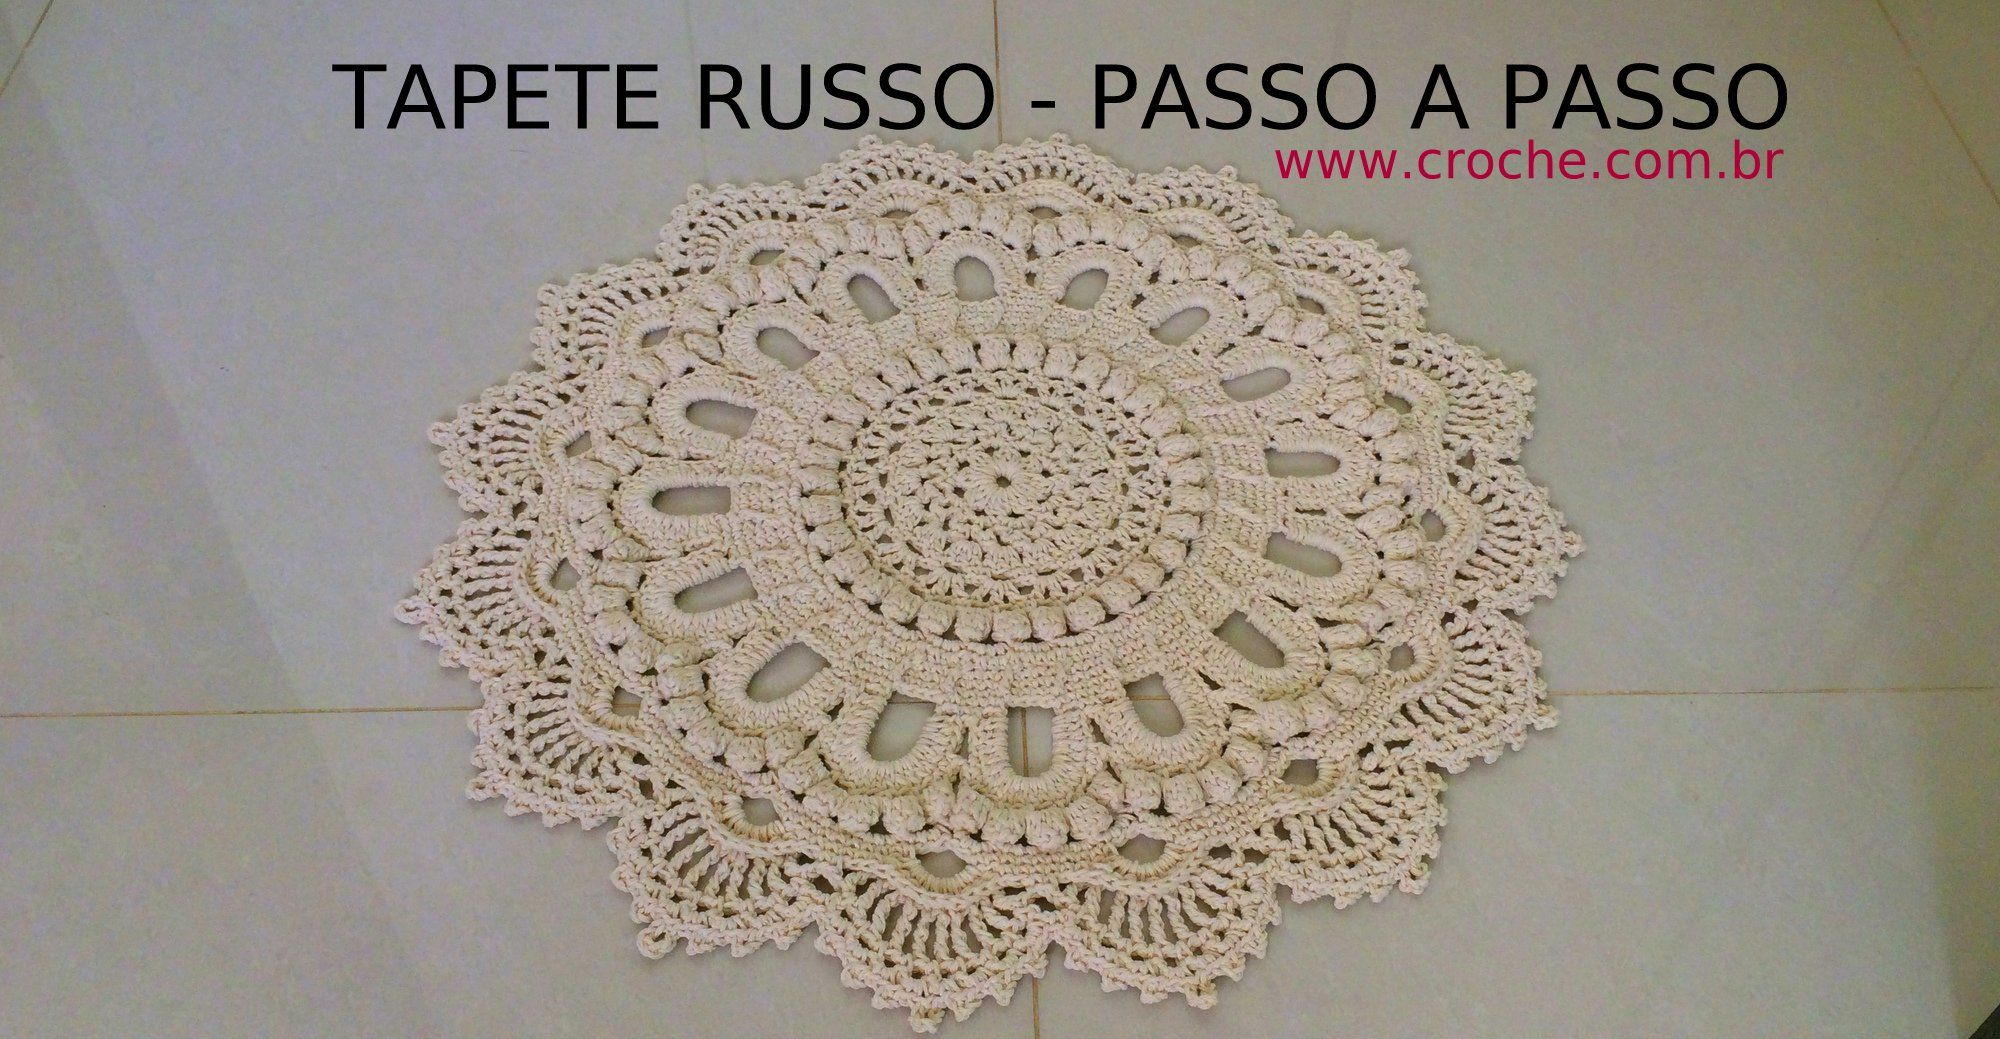 Tapete Russo Passo A Passo Parte2 Crochet And Patterns -> Tapete De Croche Redondo Passo A Passo